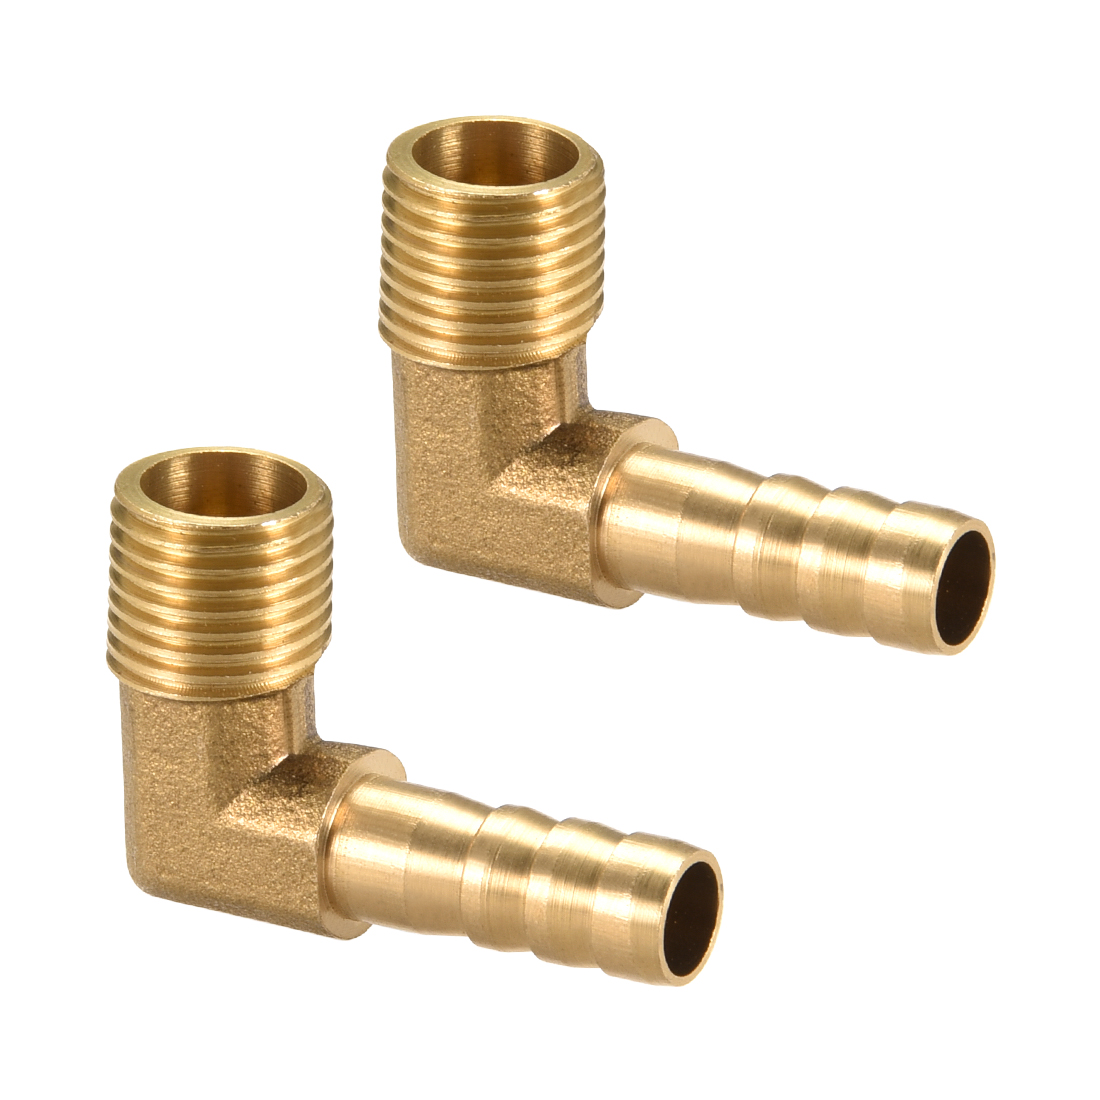 "Brass Barb Hose Fitting 90 Degree Elbow 8mm Barbed x 1/4"" G Male Pipe 2pcs"